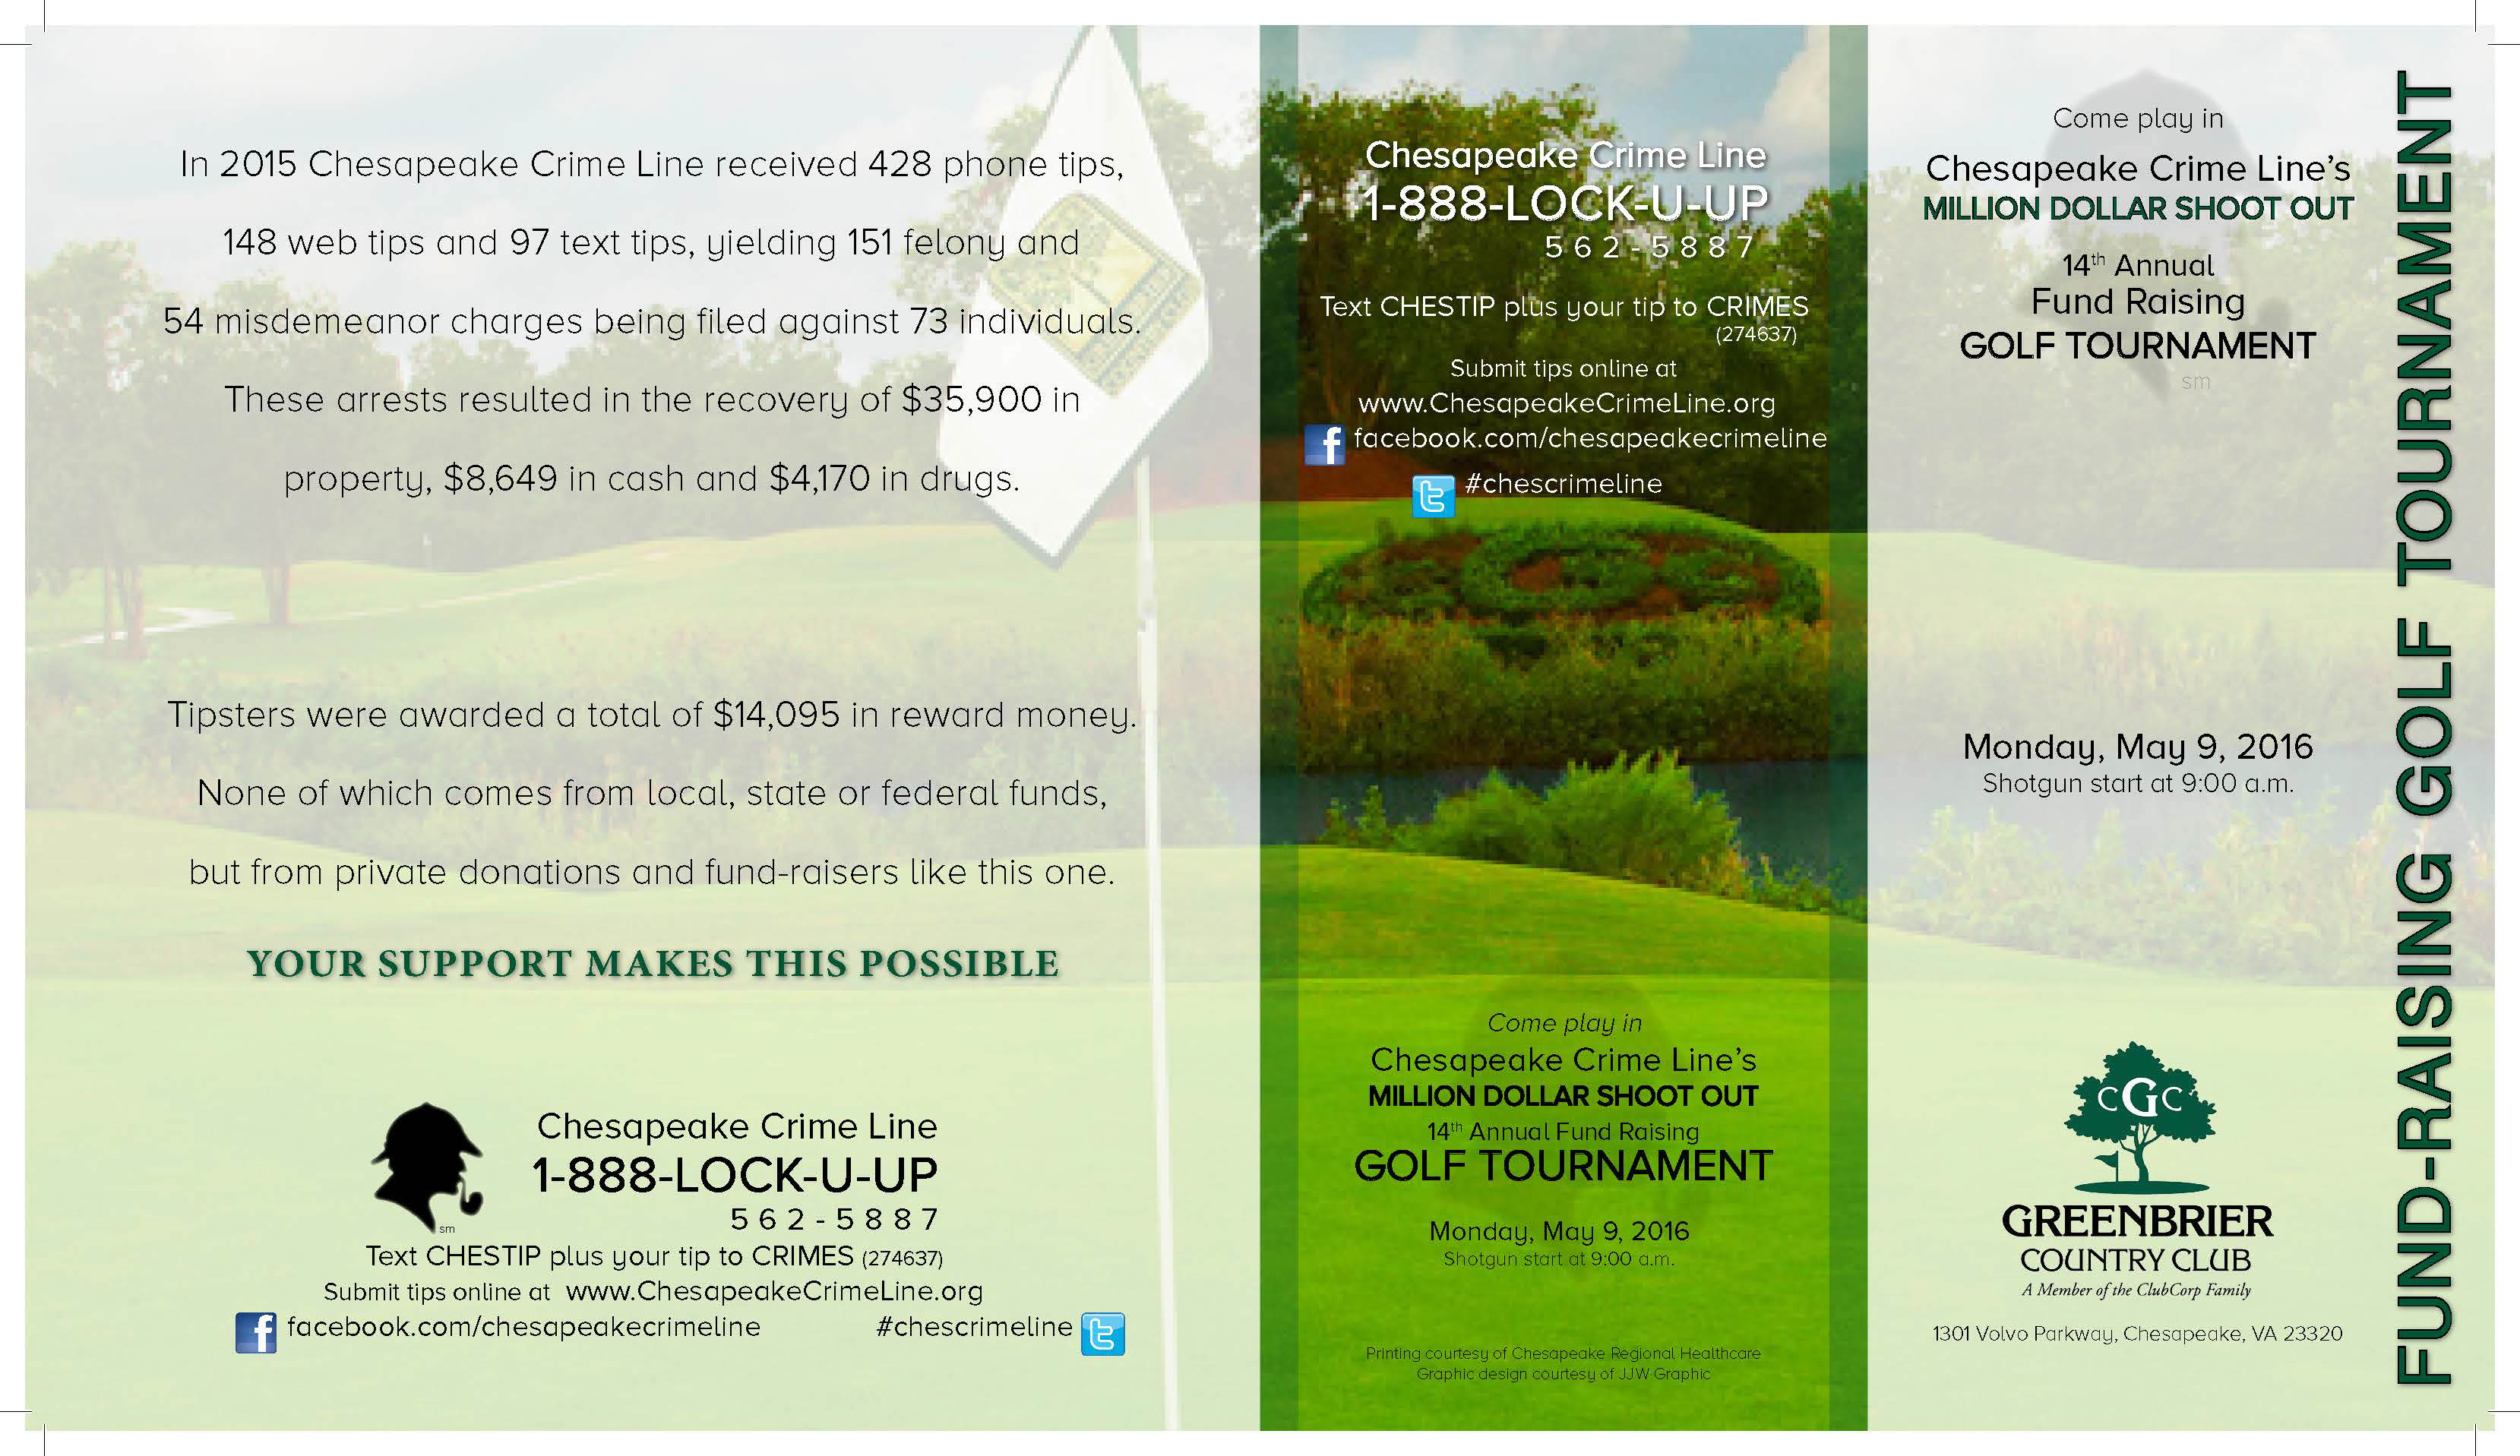 Donating The Design Of The Chesapeake Crime Lineu0027s Annual Fund Raising Golf  Tournament Brochure Since 2006 Has Been My Honor And My Way Of Giving Back  To My ...